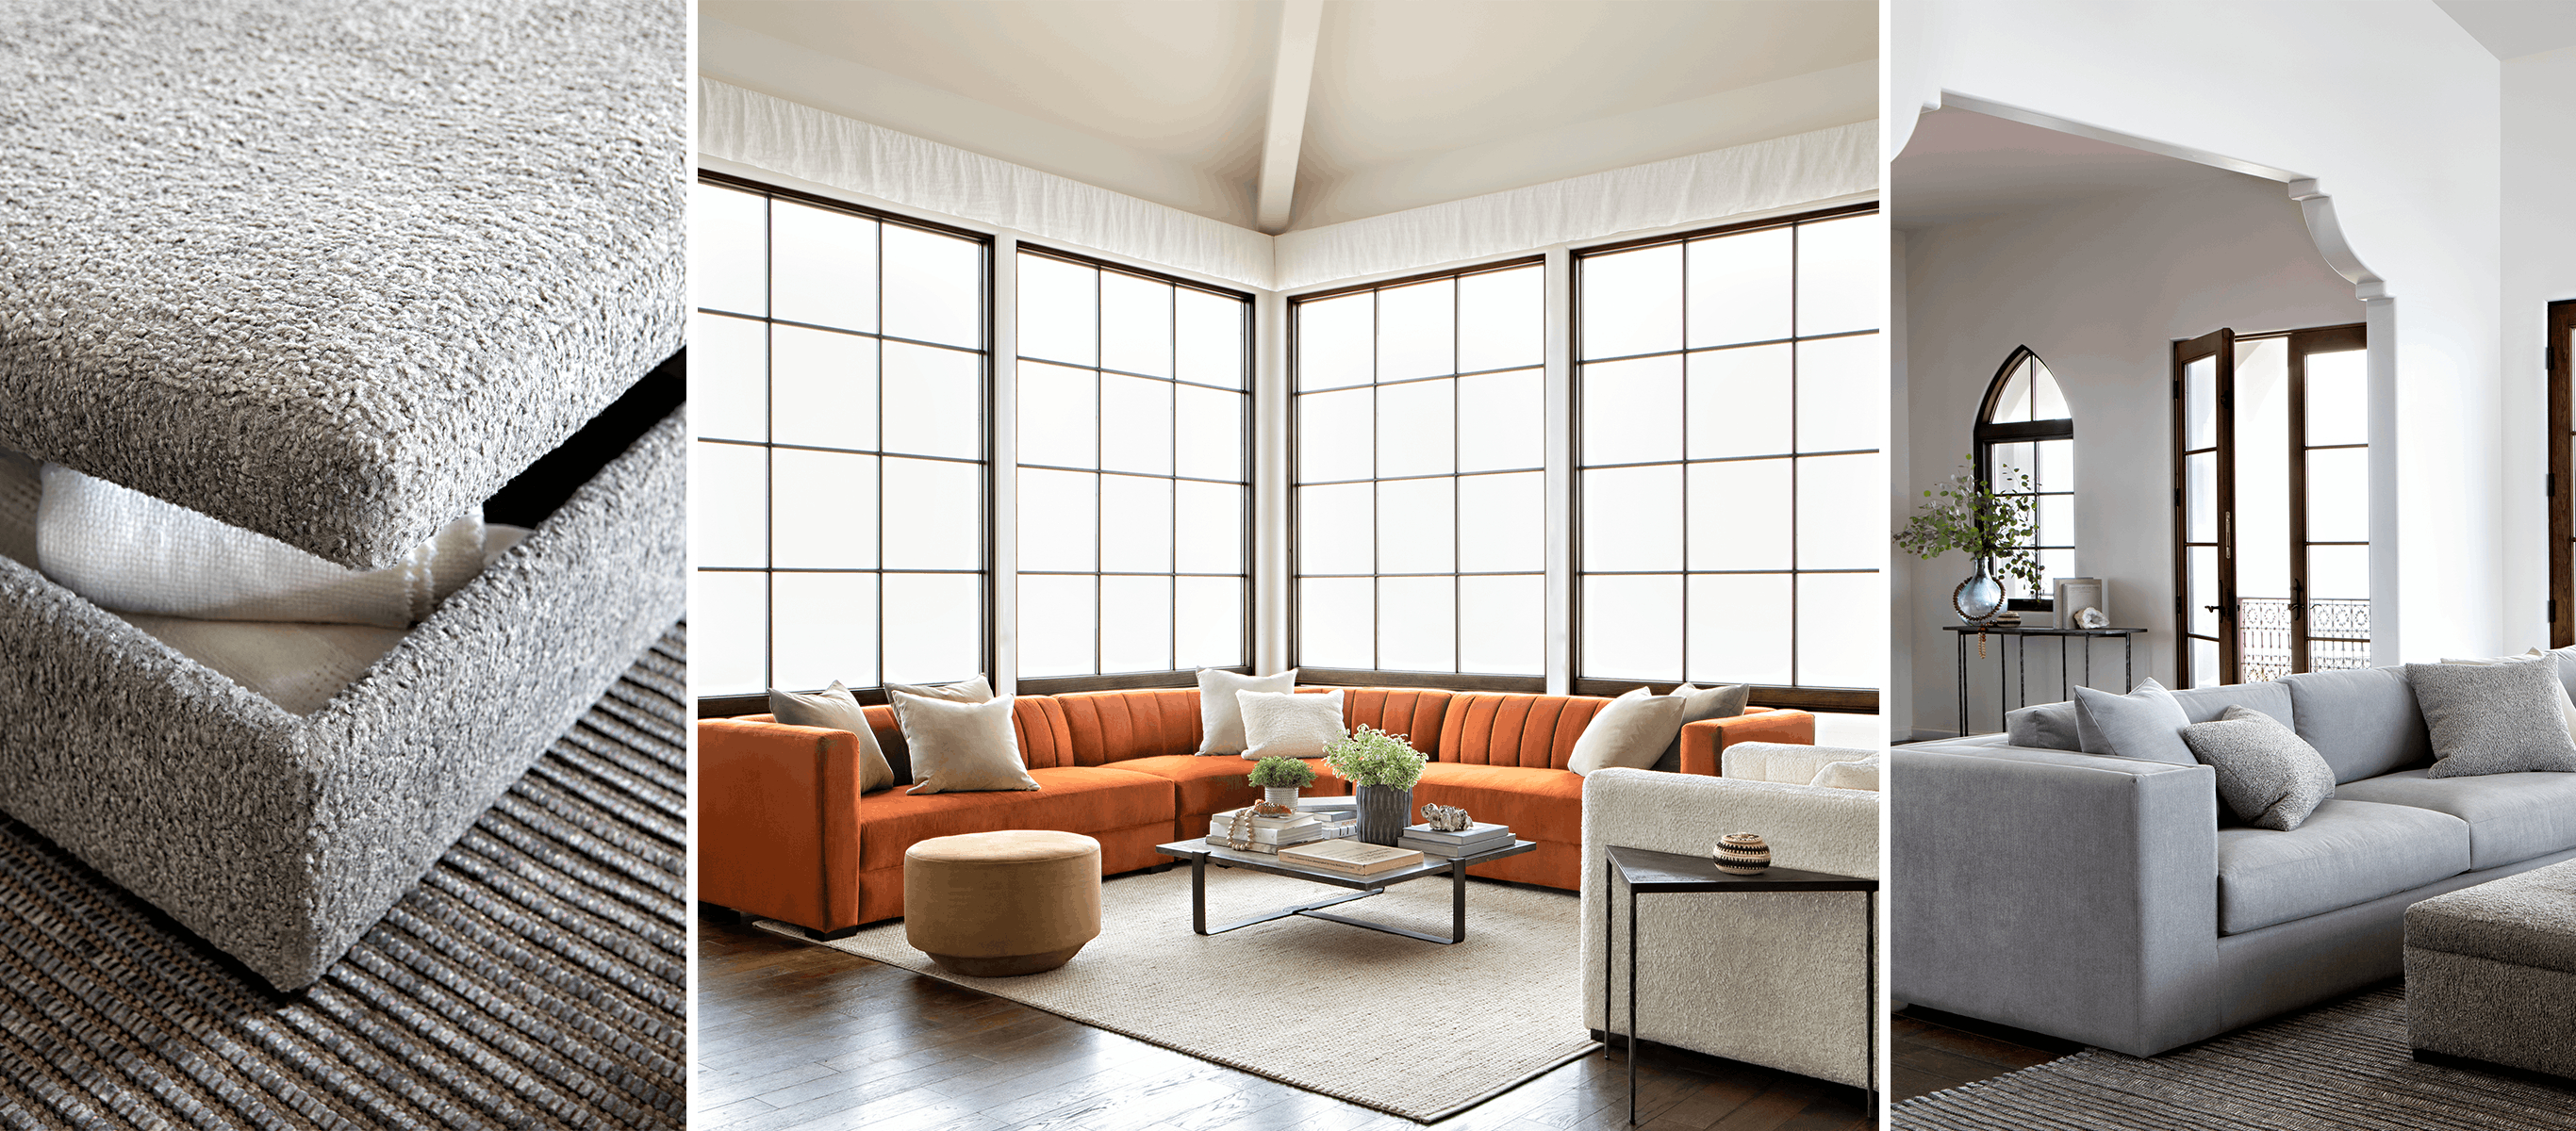 Nate Berkus Just Launched A Home Collection With Hubby Jeremiah In Matteo Arm Sofa Chairs By Nate Berkus And Jeremiah Brent (Photo 19 of 25)